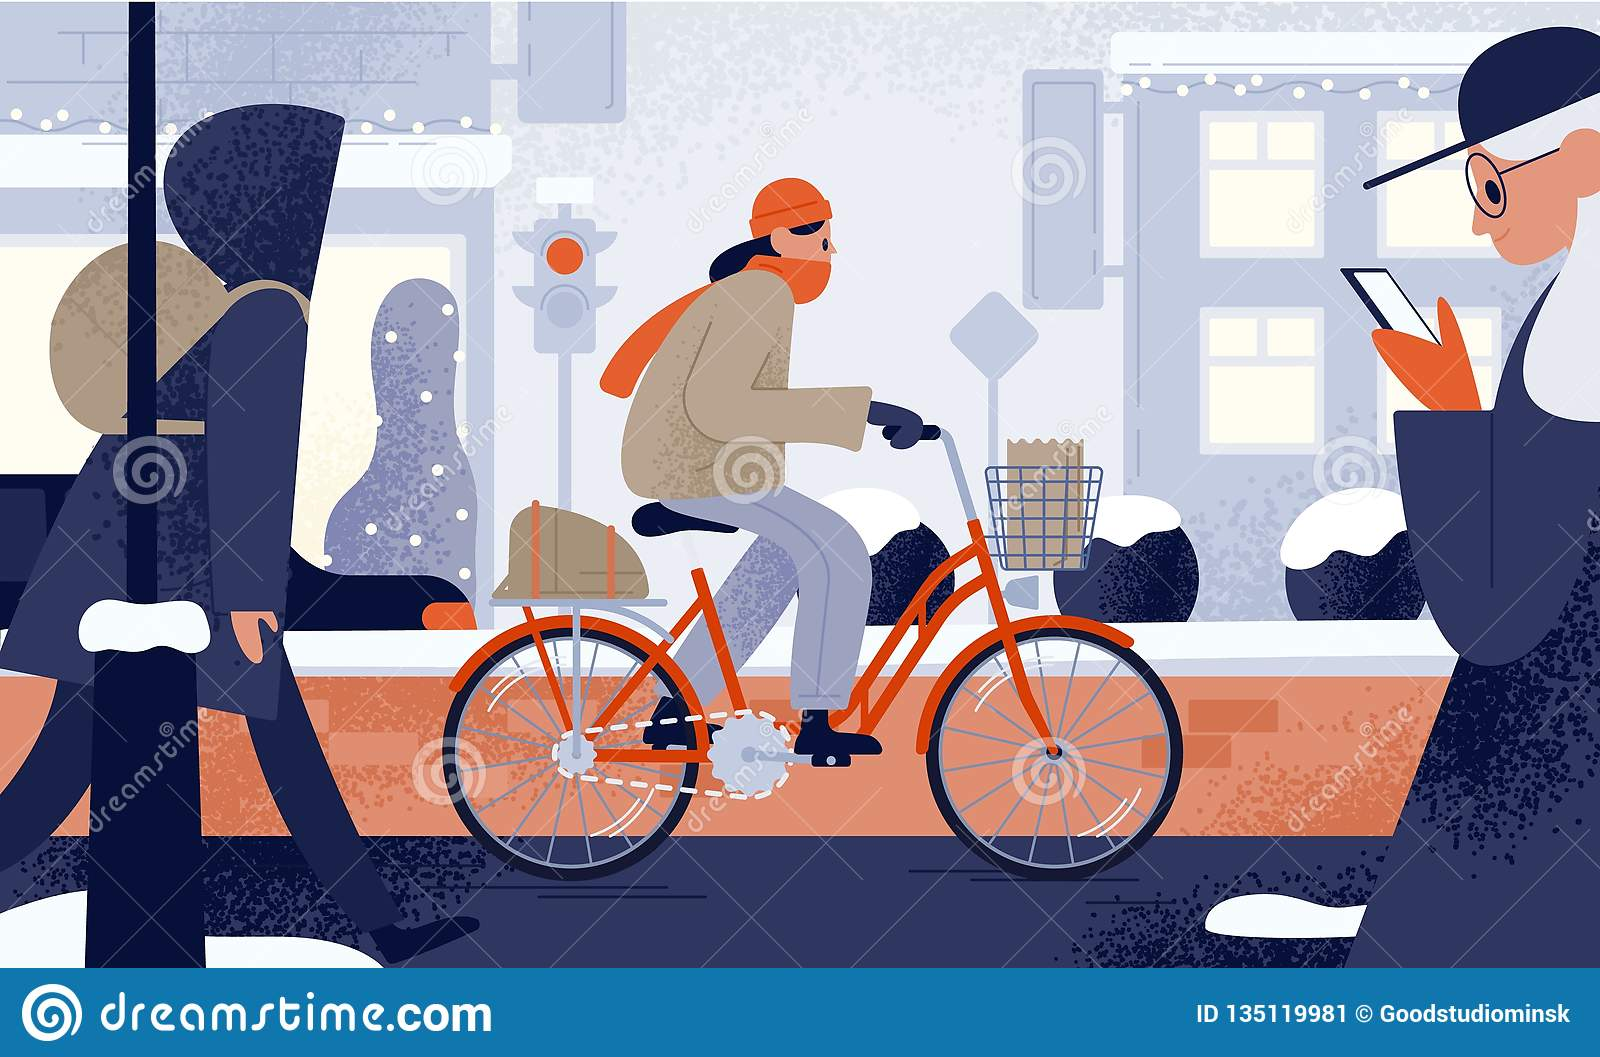 Cute young woman dressed in outerwear riding bicycle in winter. Girl cycling along snowy city street in cold weather